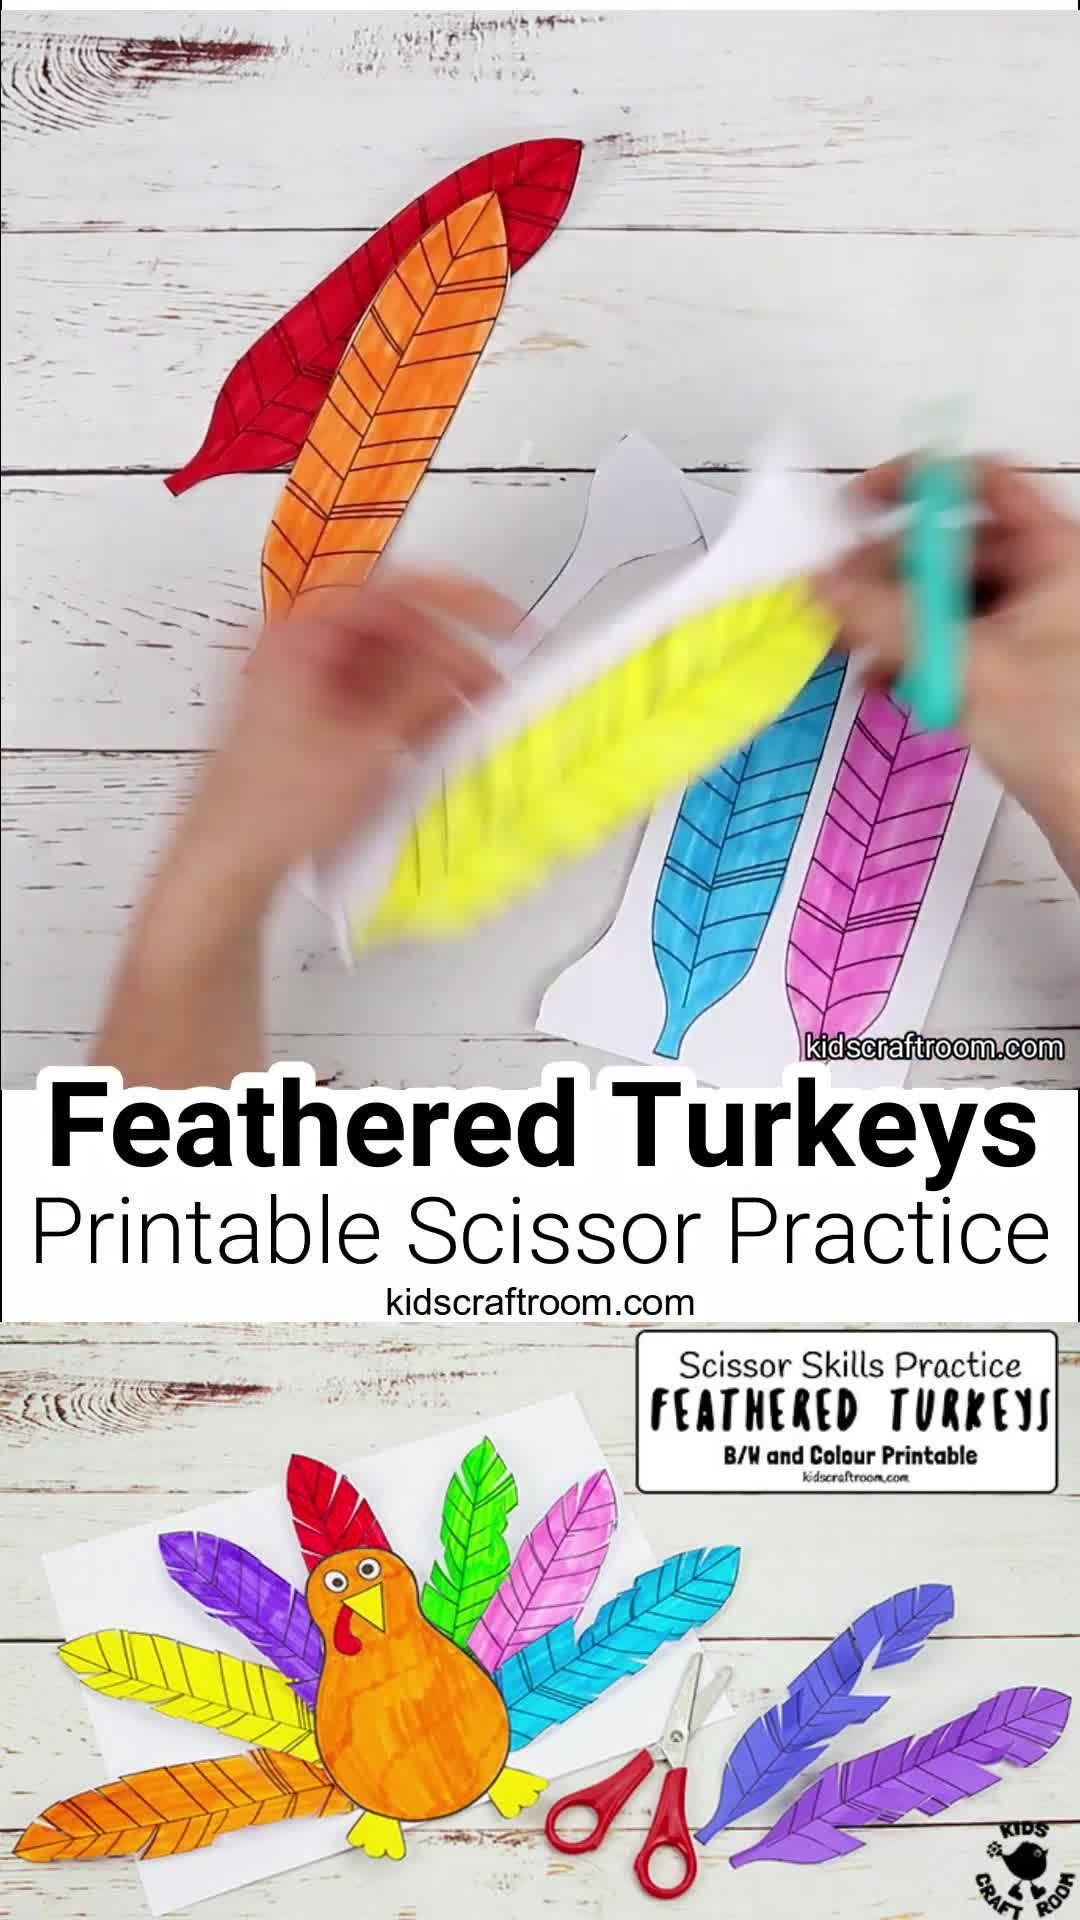 Feathered Turkey Craft and Scissor Practice